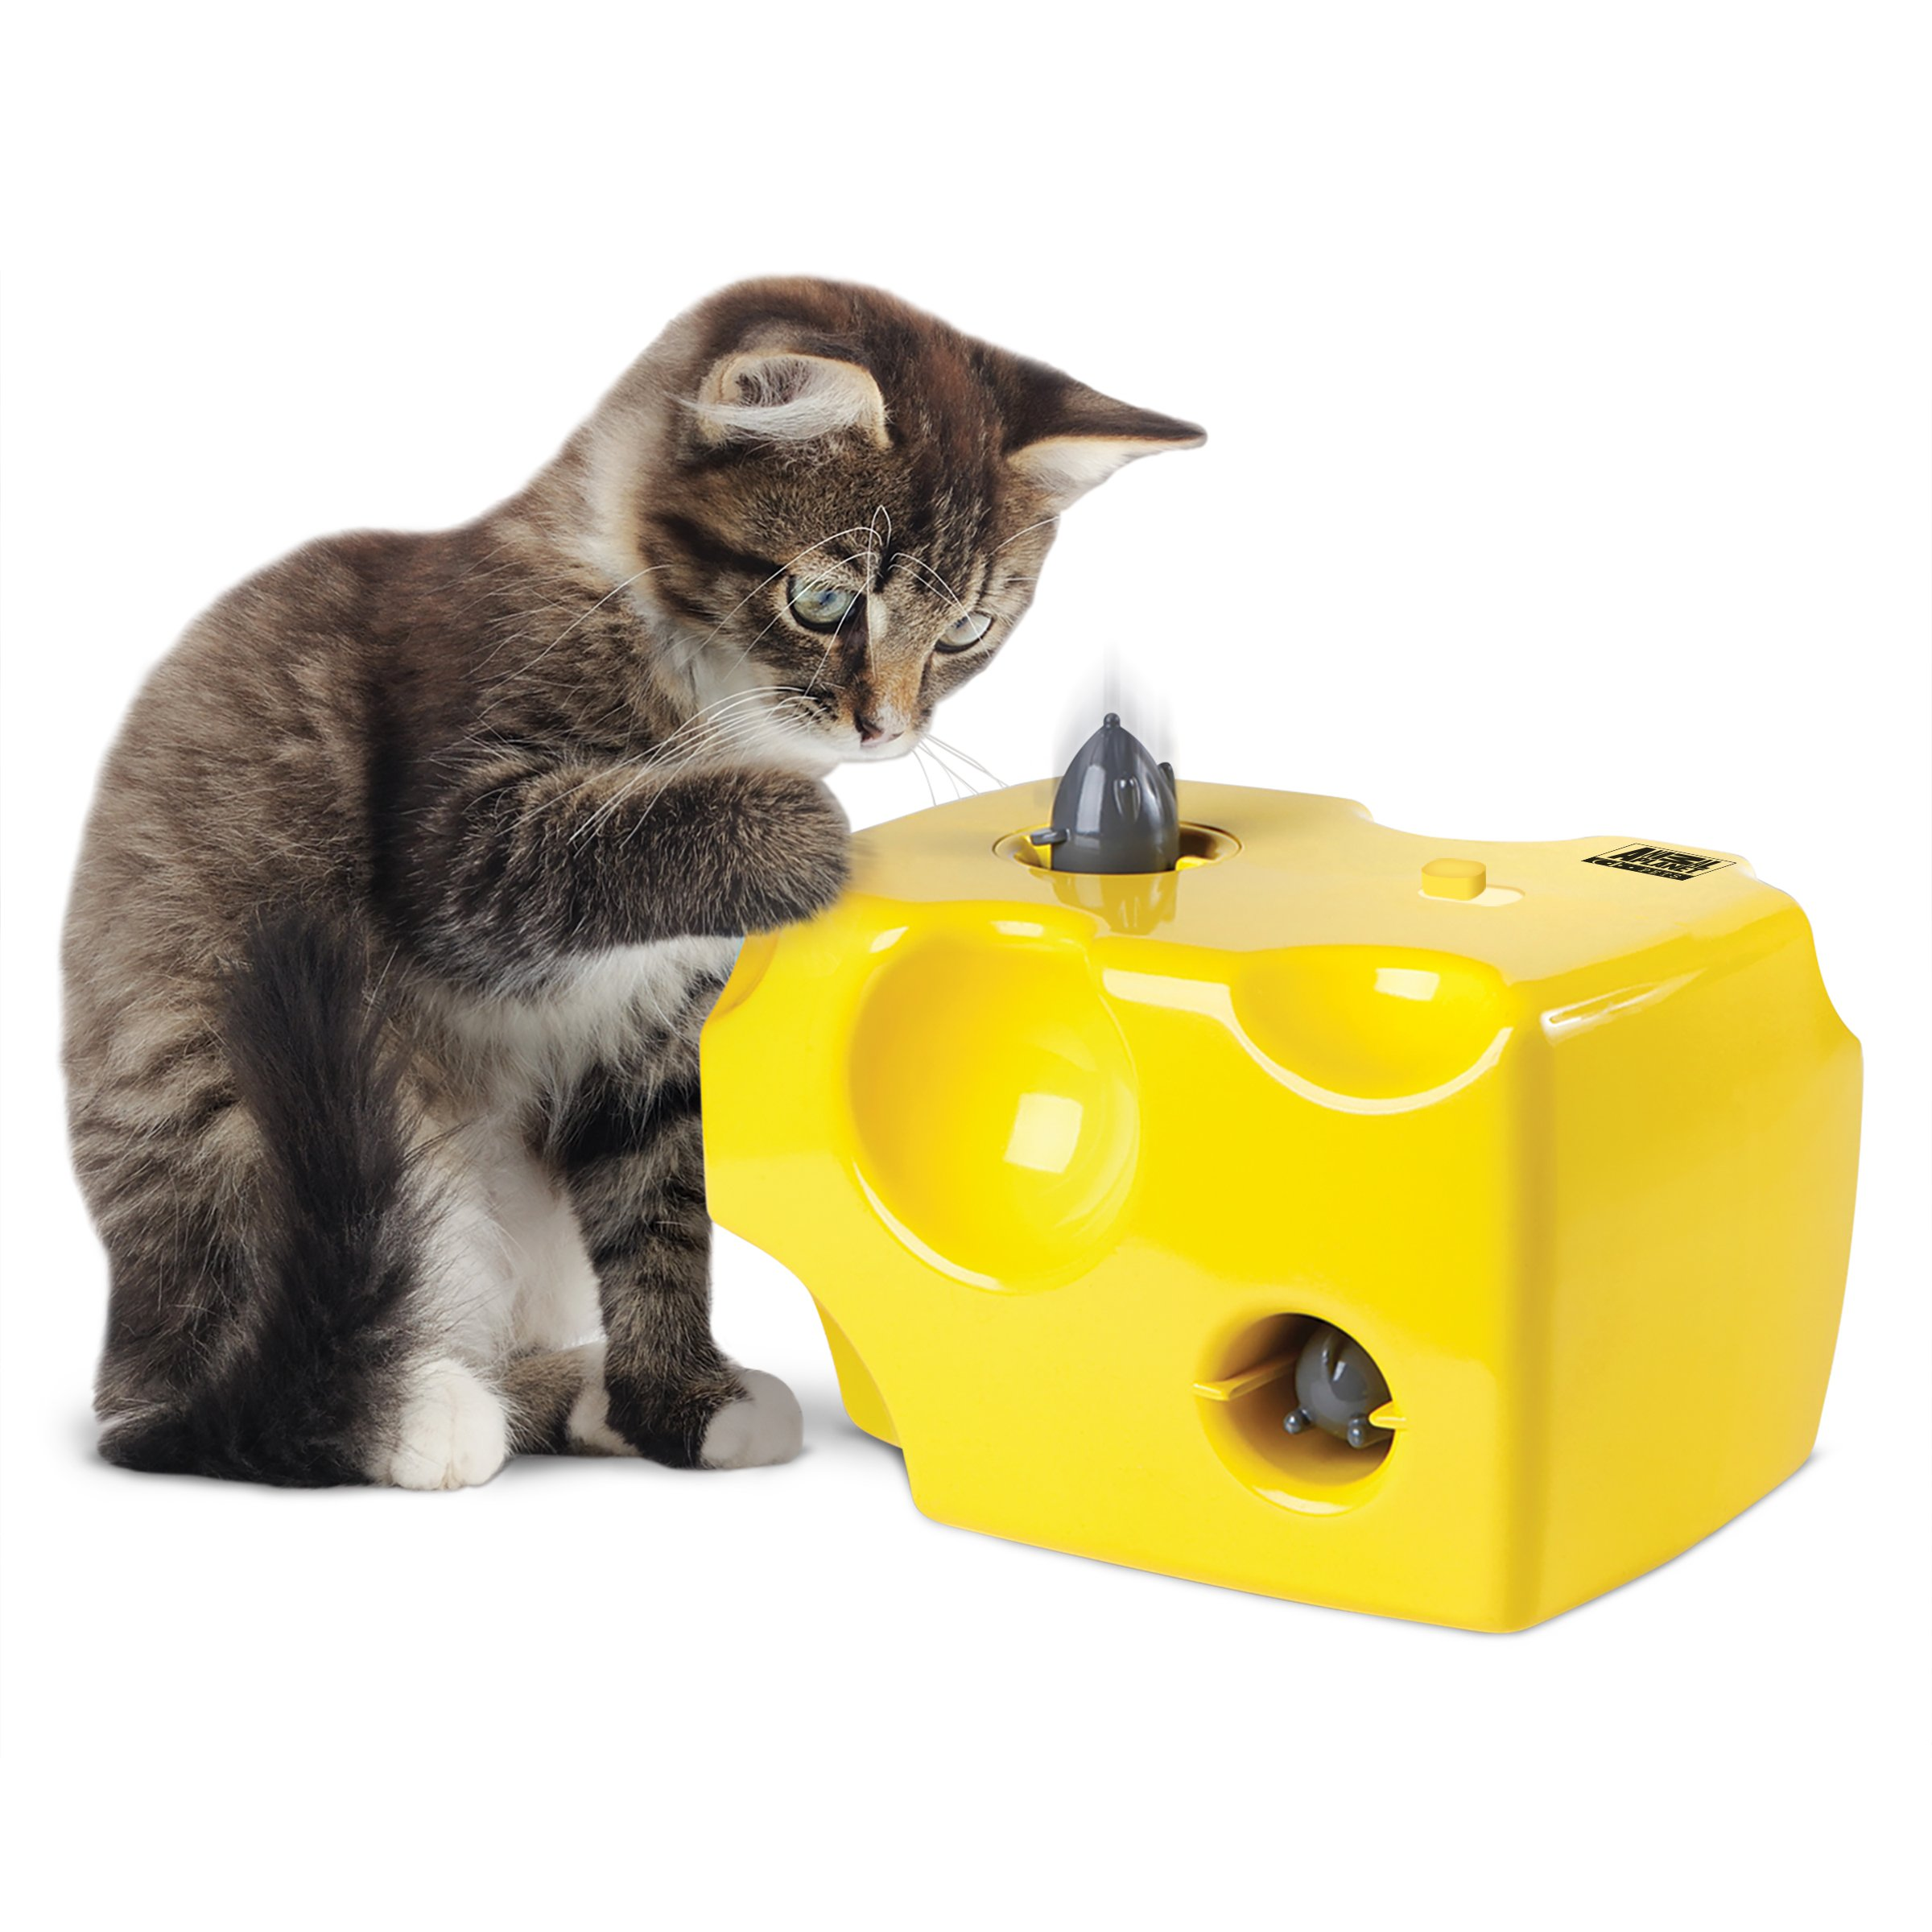 ANIMAL PLANET Automatic Peek-a-Boo Mouse & Cheese Interactive Toy for Cats, Features Built-In Auto Off Function, Pop Out Mice For Hours Of Entertainment, All Day Play W/Away Mode, Battery Operated by Animal Planet